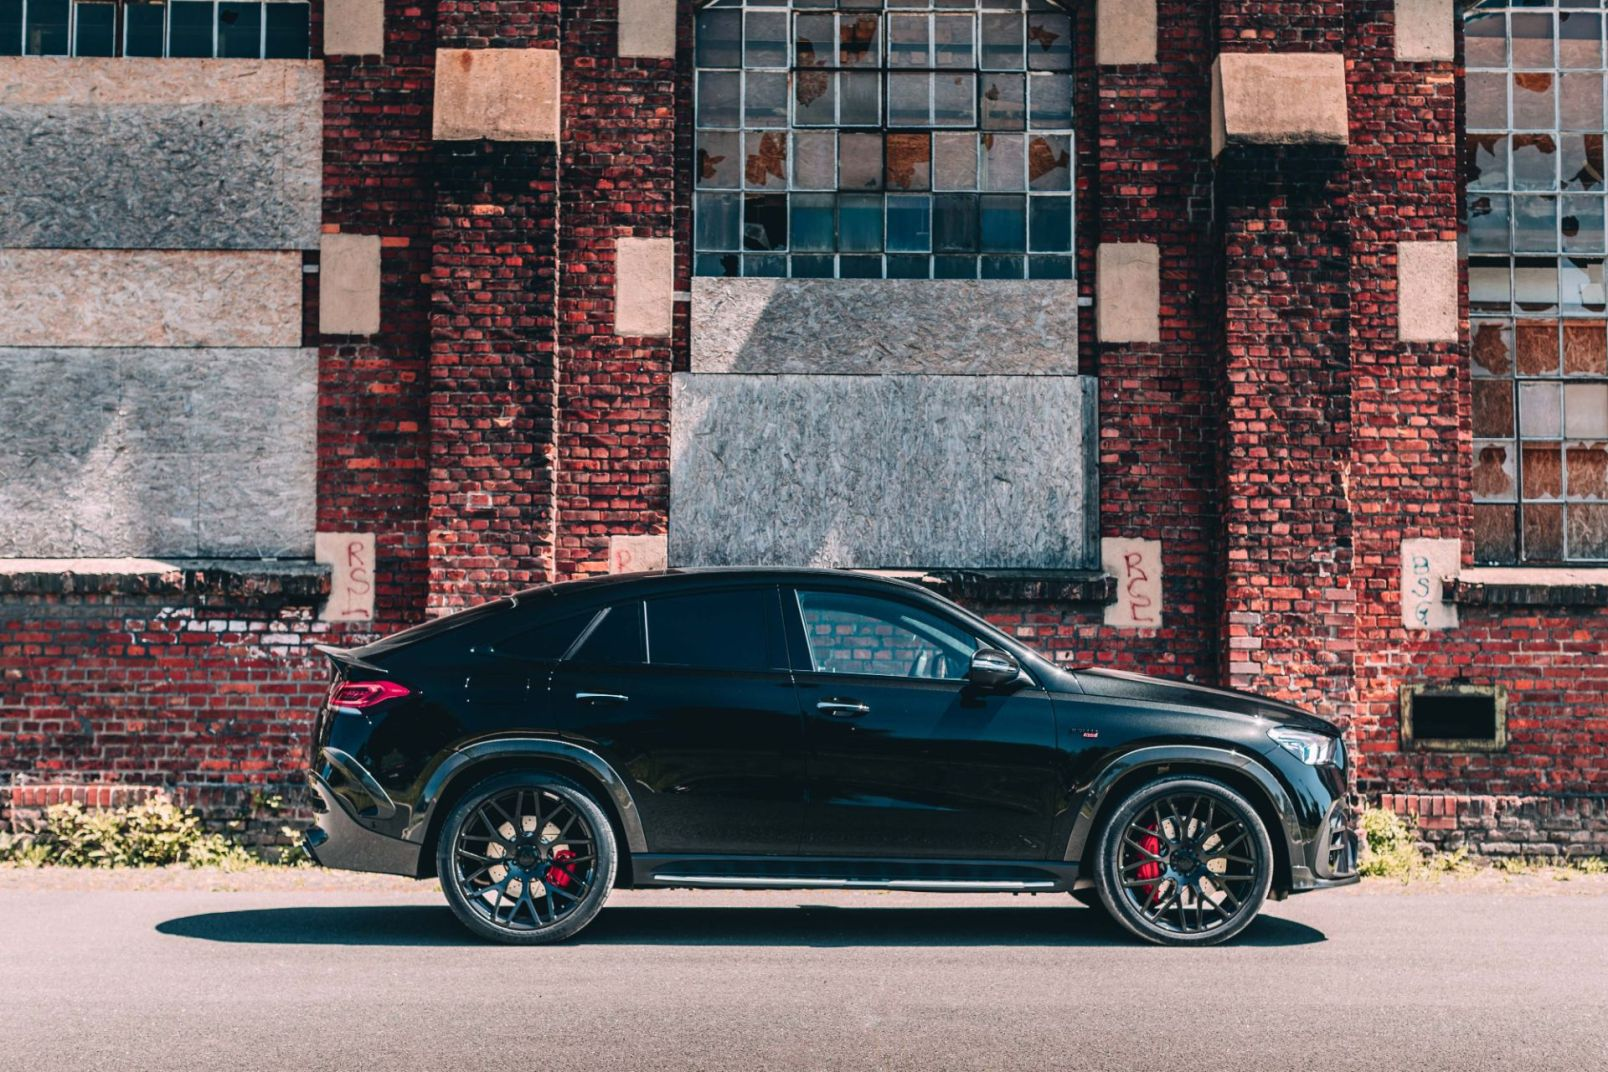 Brabus 800 Mercedes Amg Gle 63 S 4matic Coupe 22 (8)